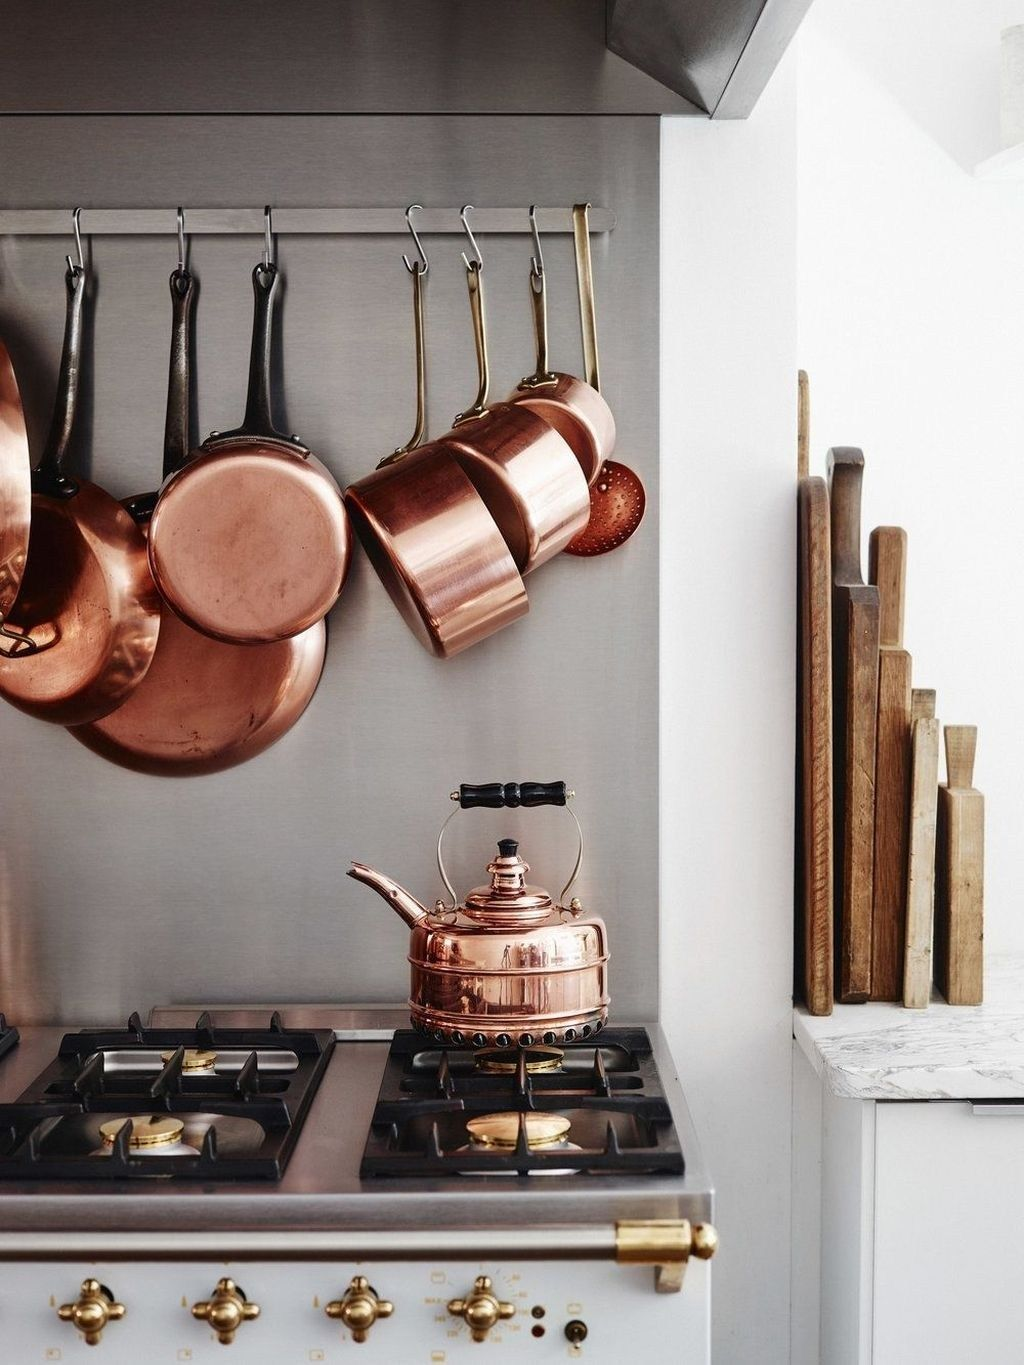 30+ Practical Kitchen Ideas You Will Definitely Like